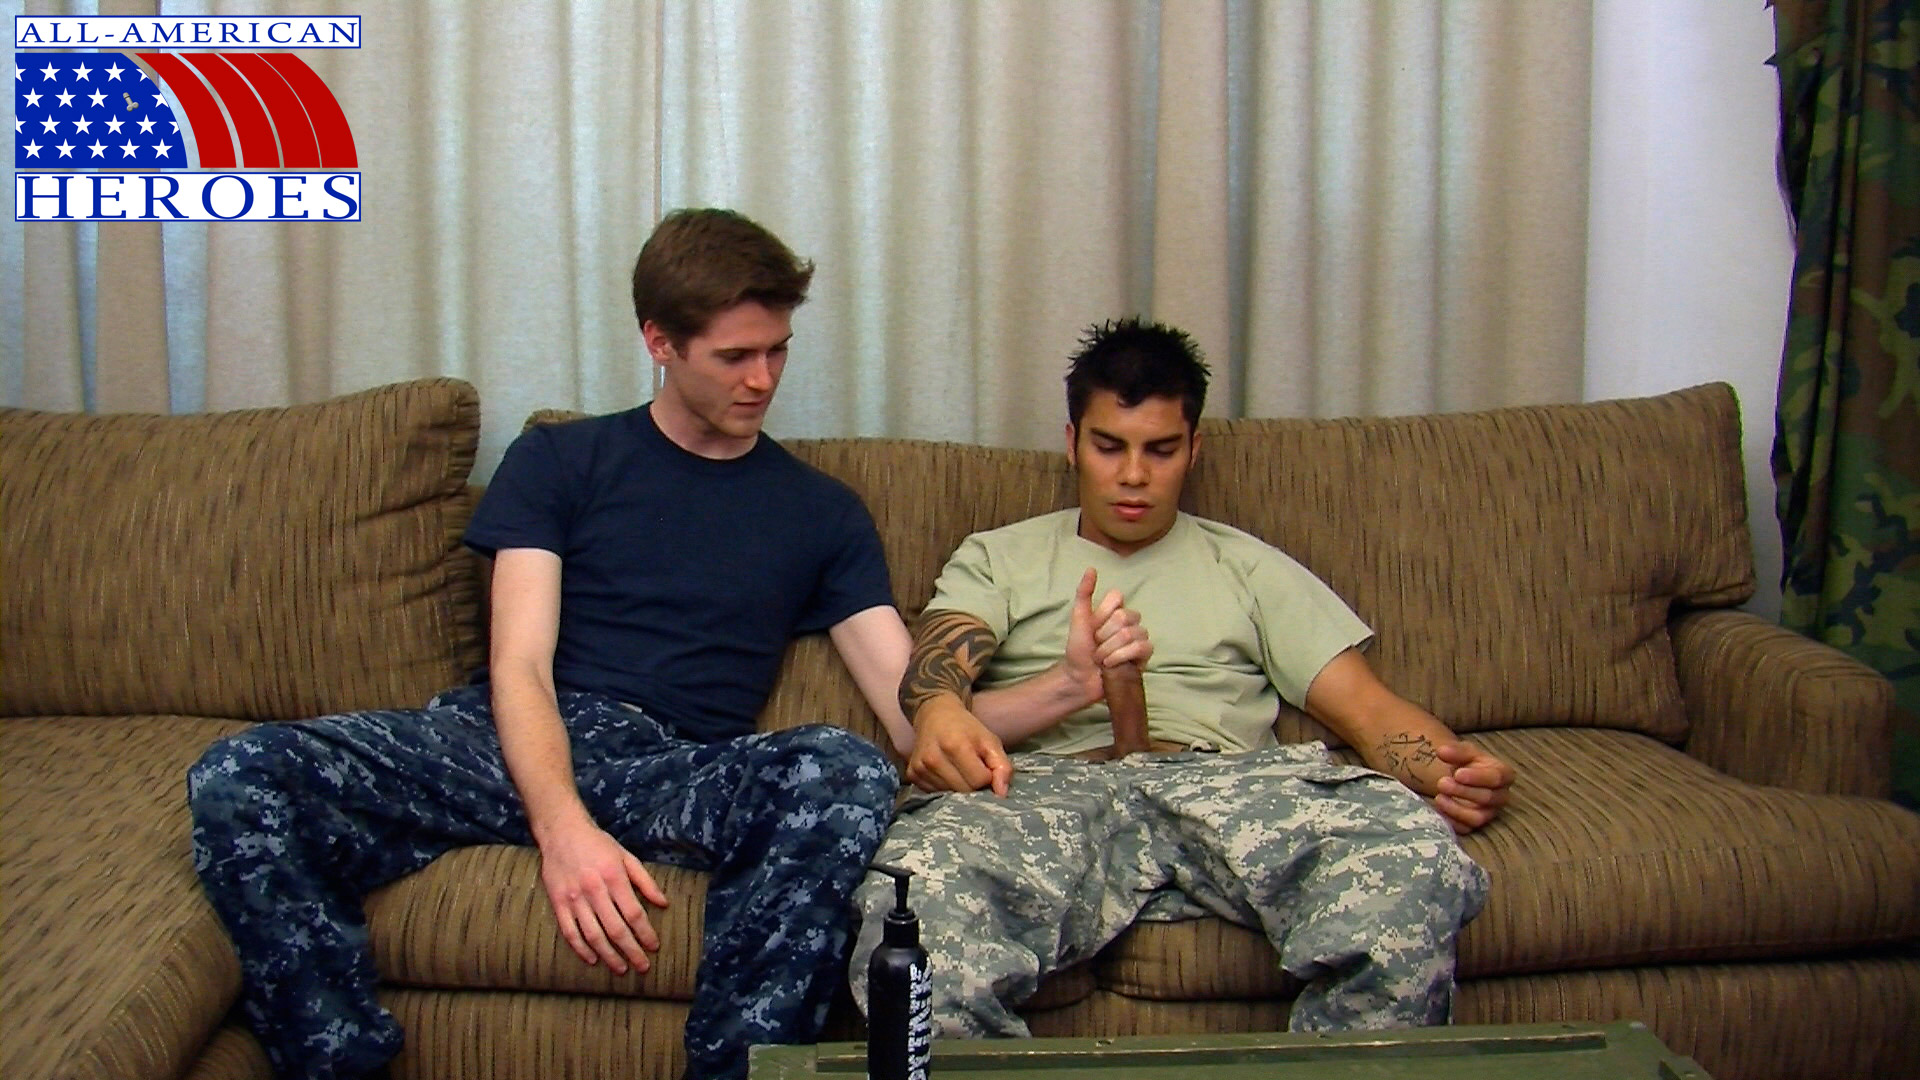 All-American-Heroes-Sergeant-Tony-and-Petty-Officer-Conan-01 Real Straight Army Sergeant Fucks a Gay Navy Petty Officer